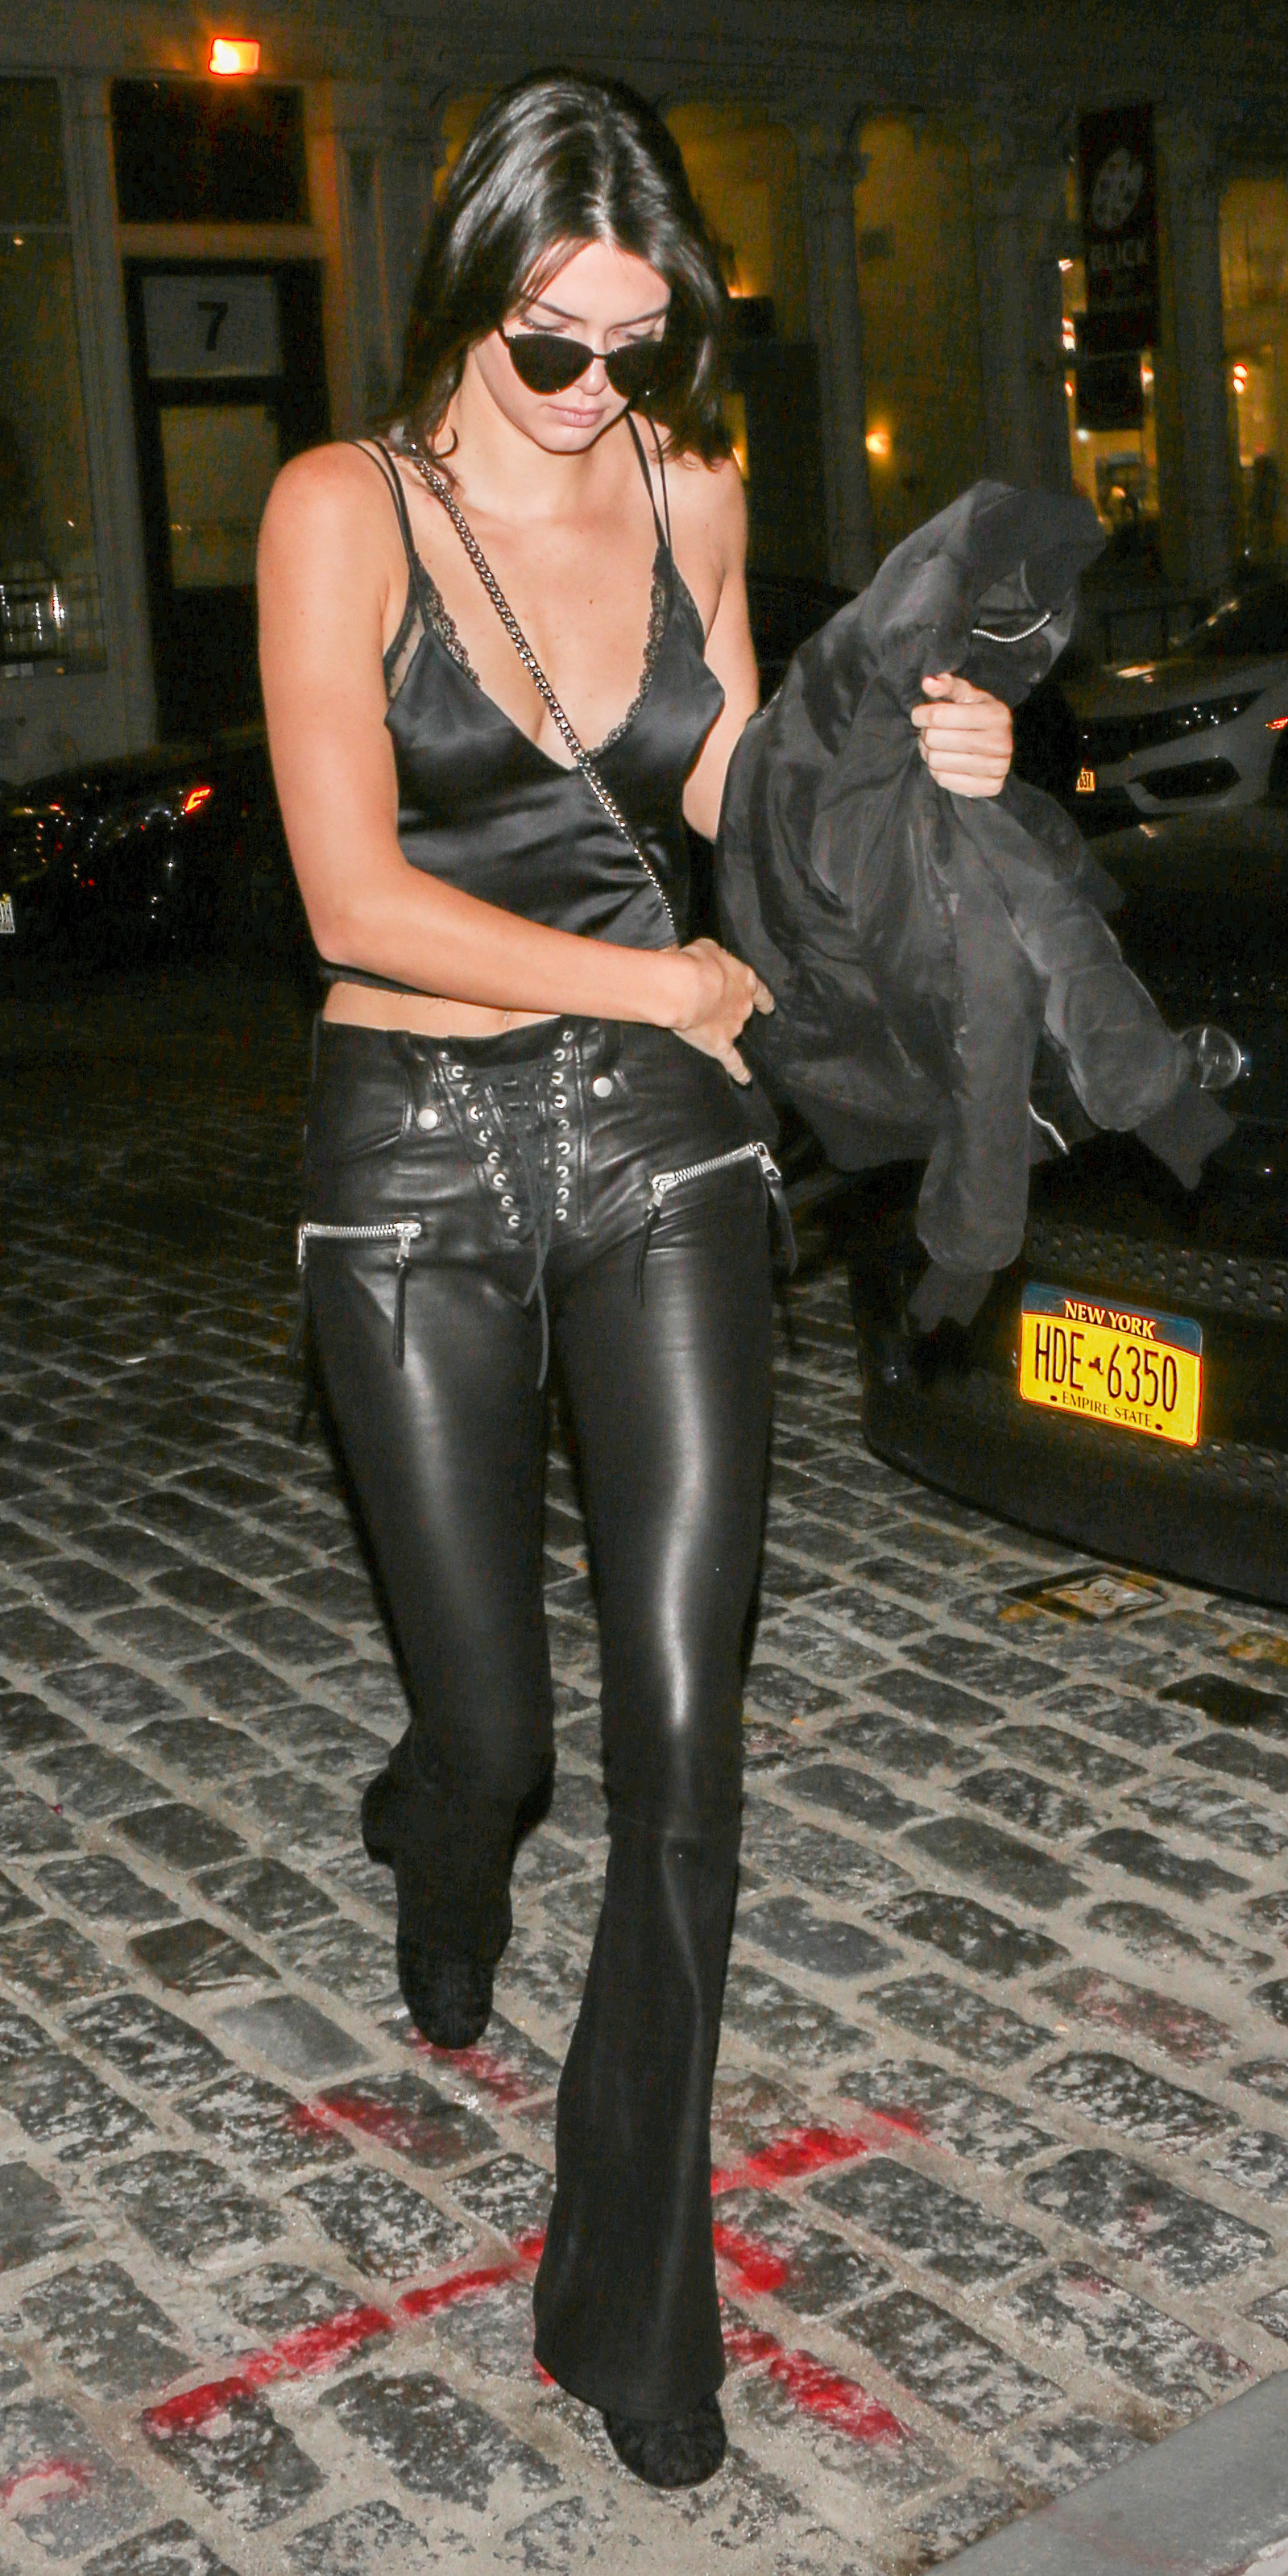 September 13, 2016: Kendall Jenner is seen with a lingerie top and leather pants as she arrives at Gigi Hadid apartment in New York City. Mandatory Credit: PapJuice/INFphoto.com Ref.: infusny-286